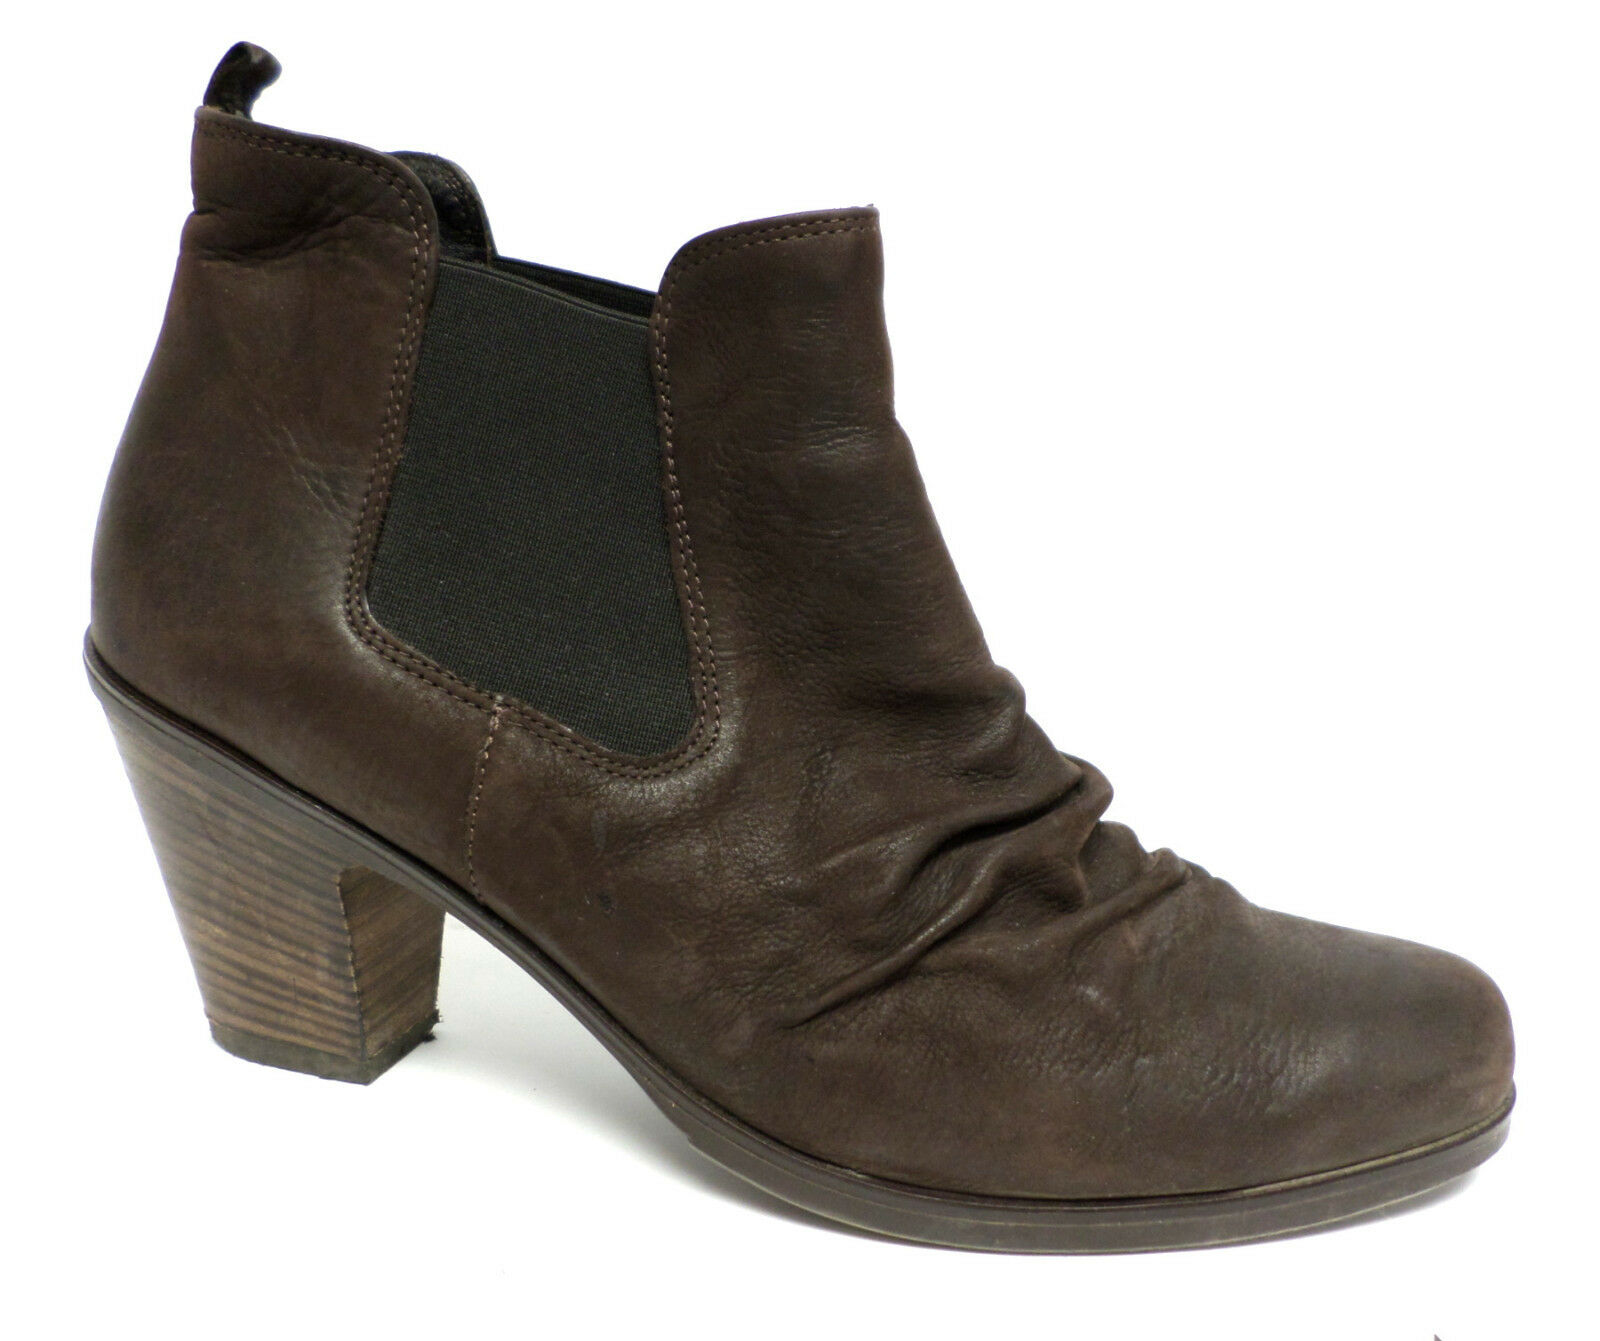 PAUL GREEN Size 9 Brown Nubuck JANO Leather Ankle Boots